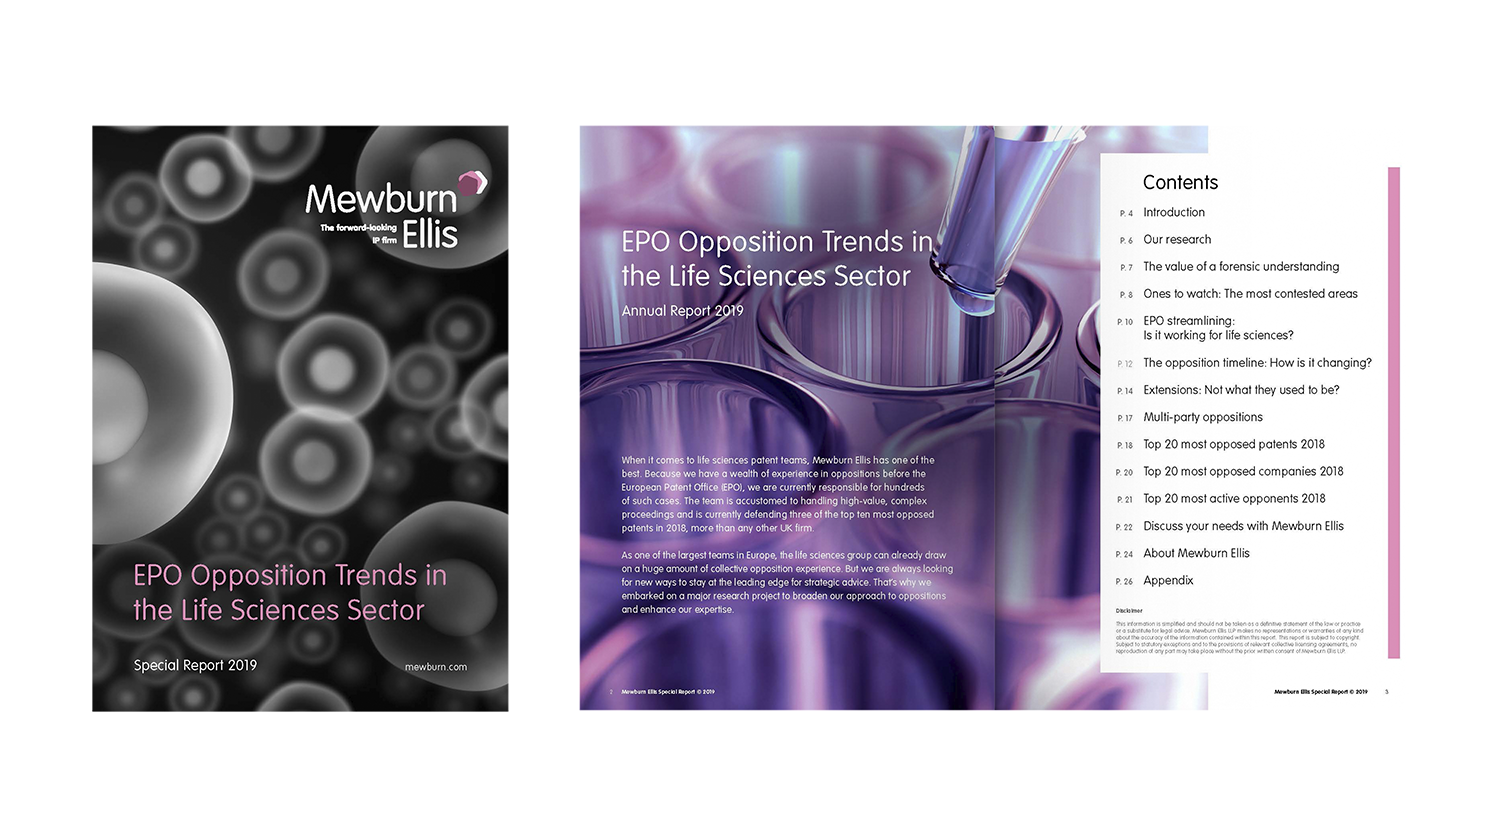 EPO Opposition Trends in the Life Sciences Sector